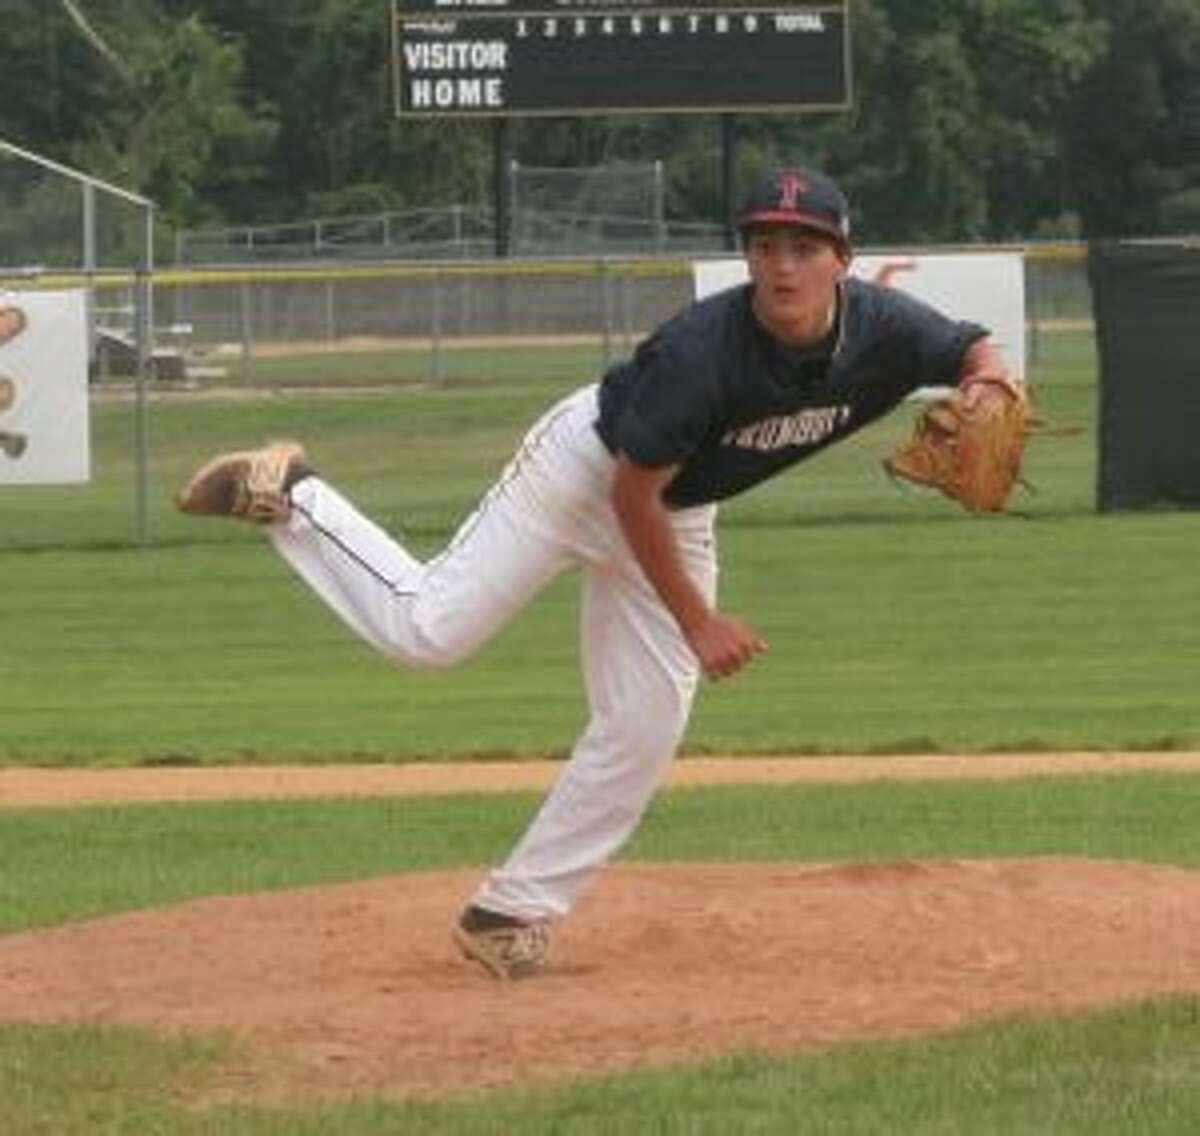 Rickey Mariani pitched five shutout innings for Trumbull. - Bill Bloxsom photos